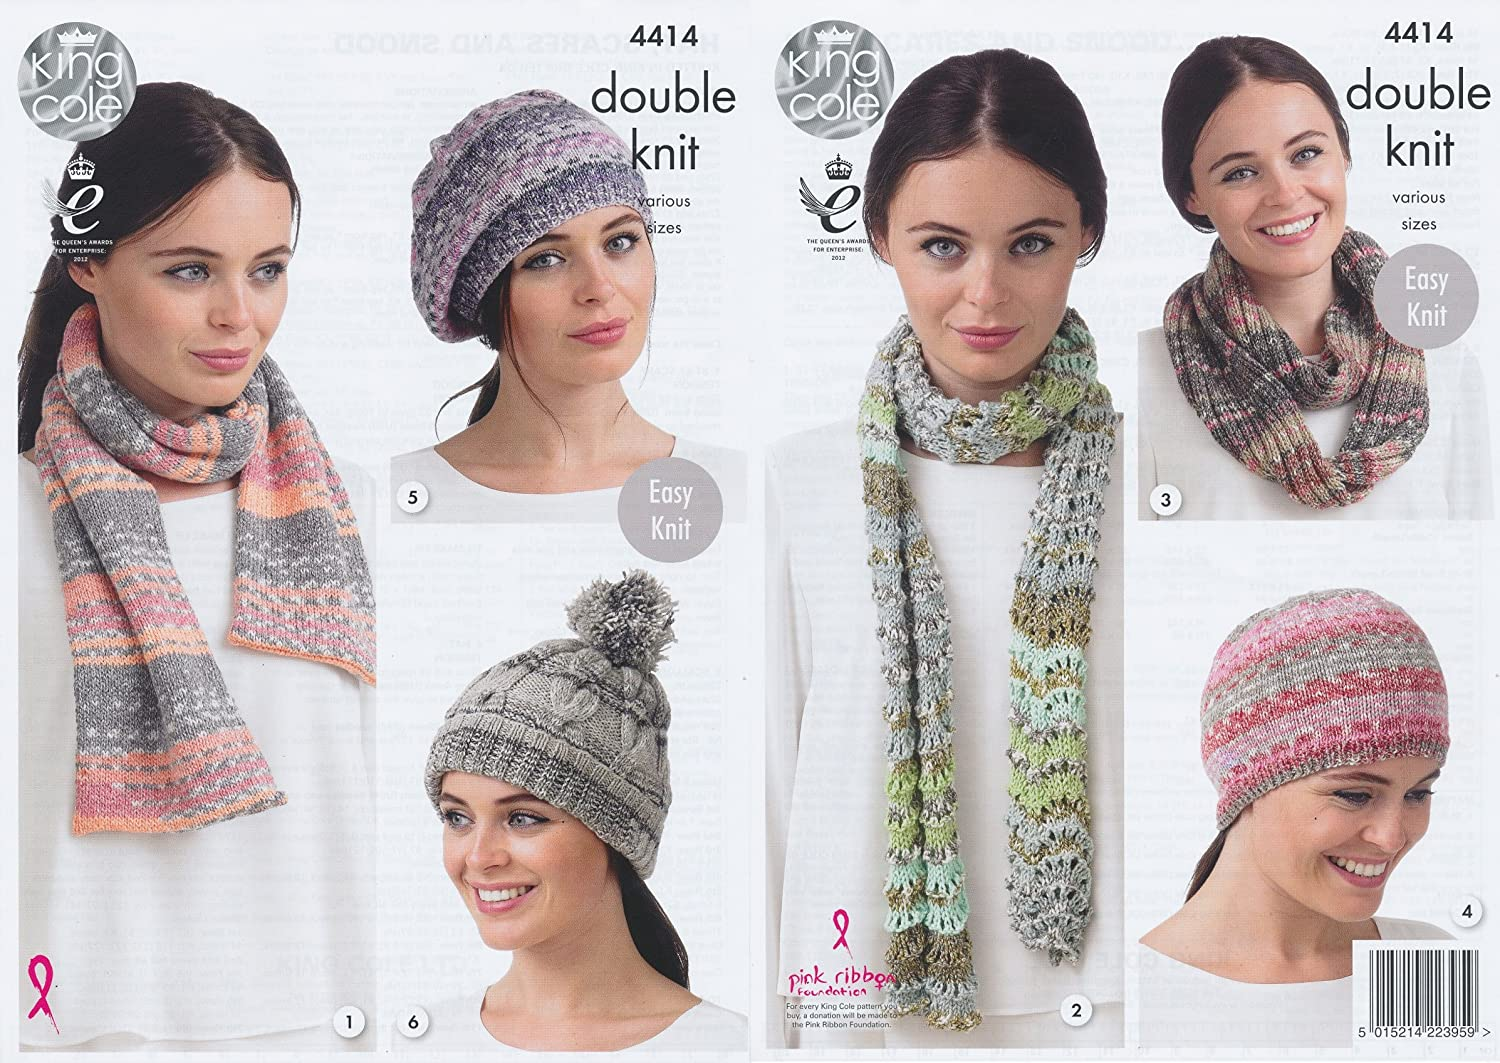 King Cole Ladies Double Knitting Pattern Womens Accessories - Hat Scarves & Snood Drifter DK (4414) by King Cole